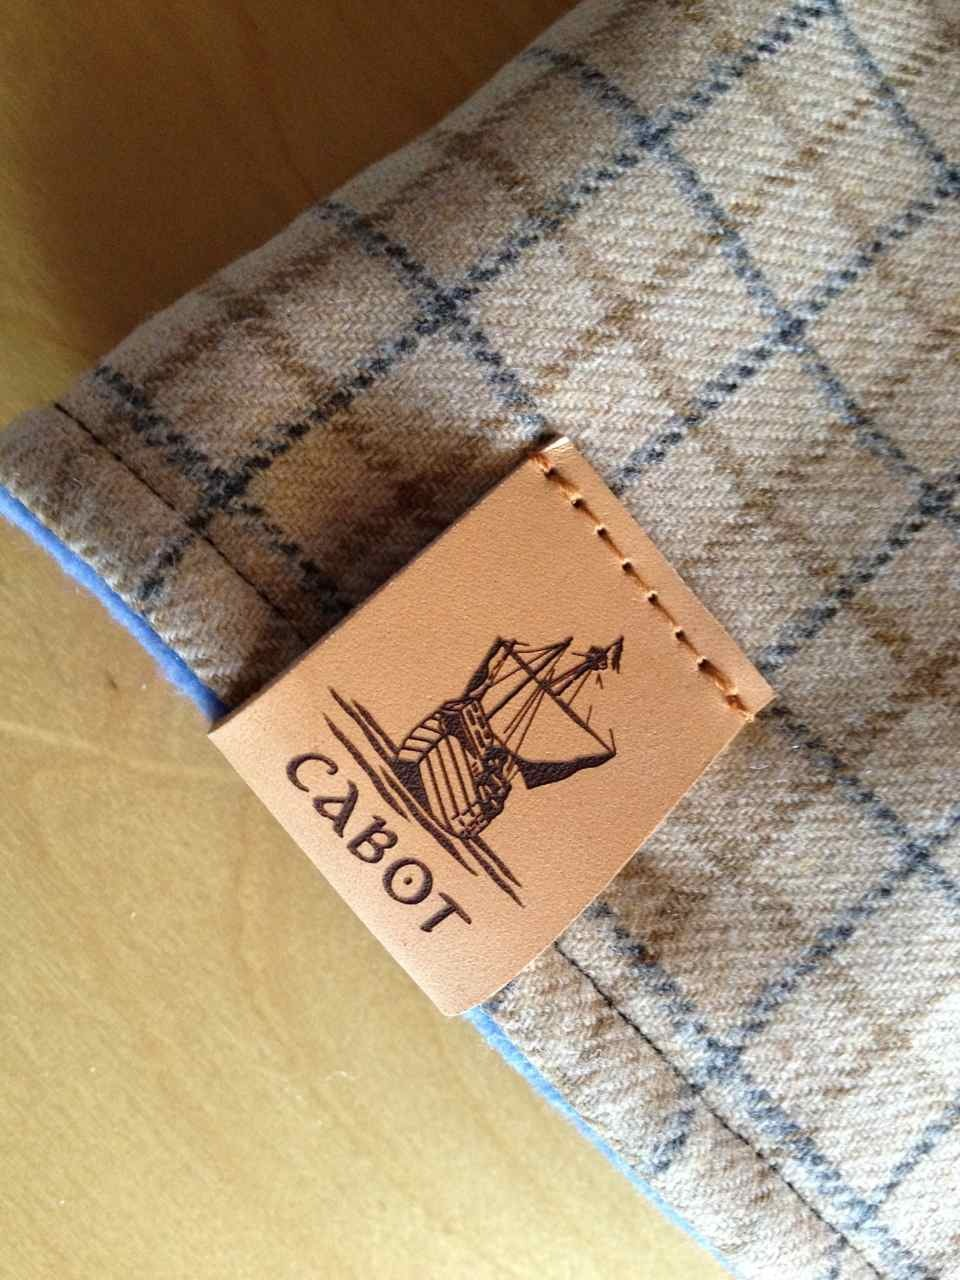 Cabot Links headcover by Seamus Golf